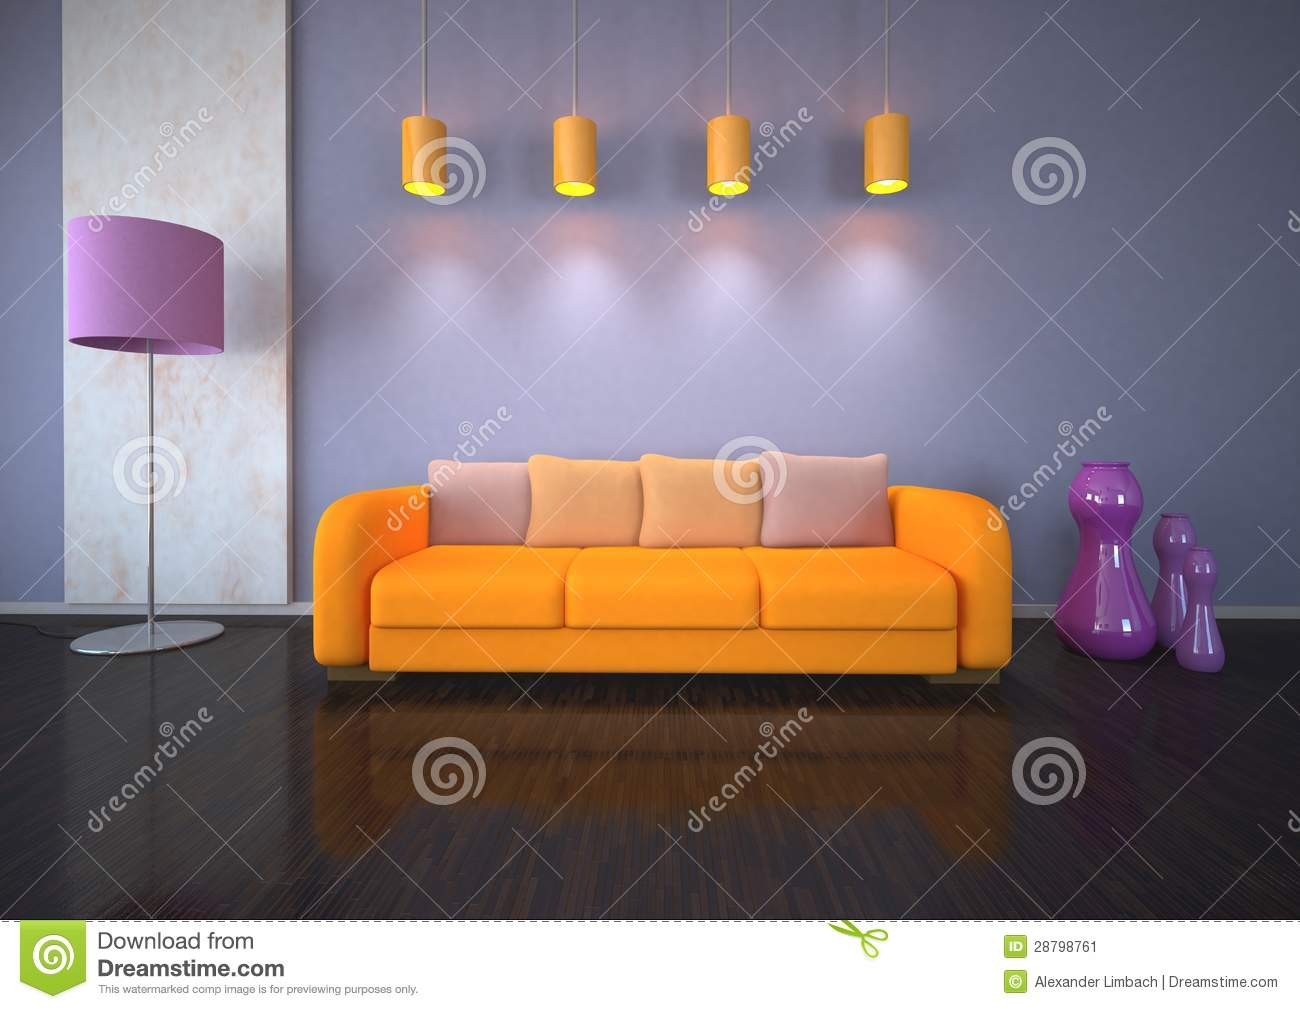 orange sofa im raum stockbild bild 28798761. Black Bedroom Furniture Sets. Home Design Ideas